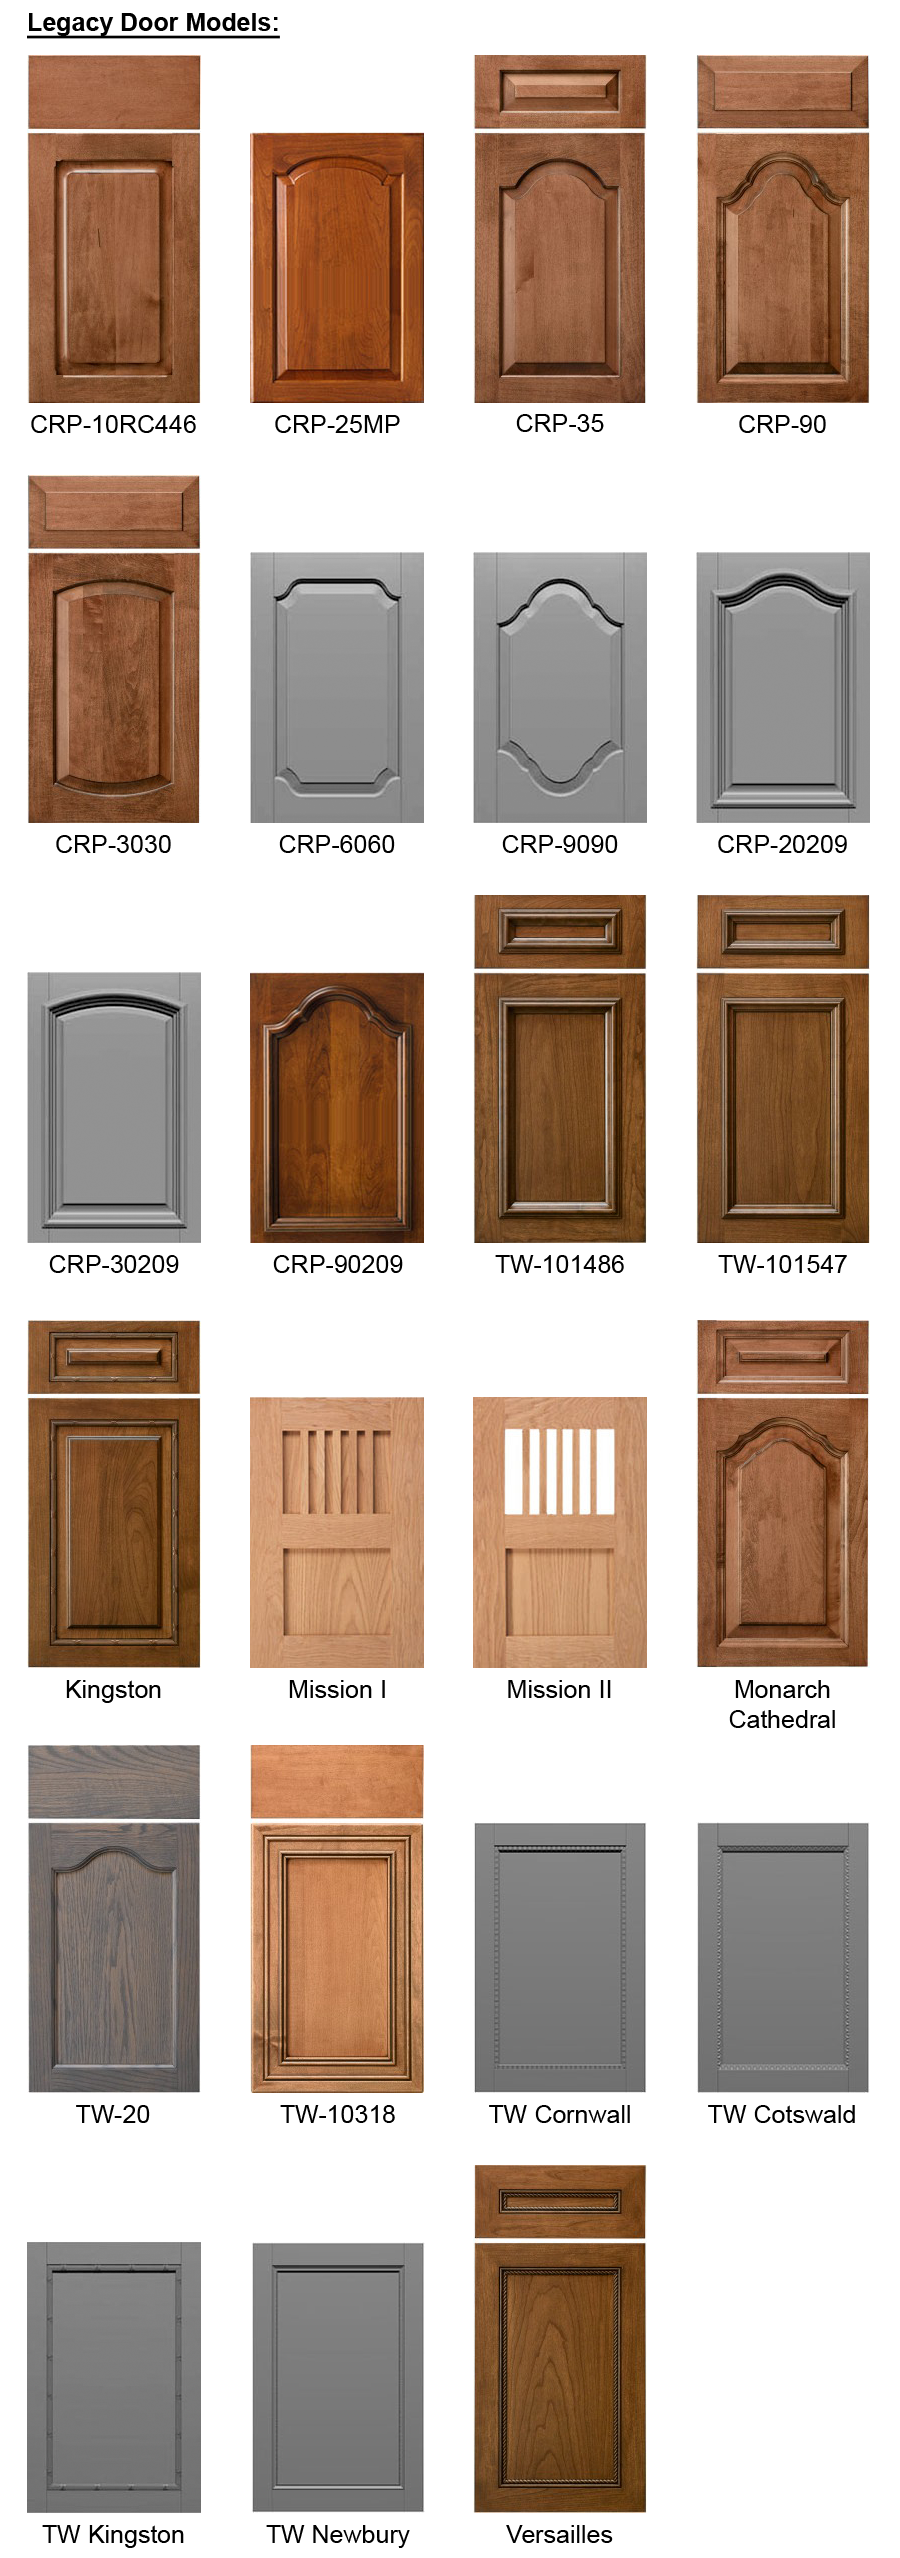 Available drawer front designs include Slab Front Designer Slab Front u0026 Matching Front. In the next step of this form you will select your actual desired ...  sc 1 st  Cabinet Joint & RTA Cabinet Quote - Detailed Form - Cabinet Joint